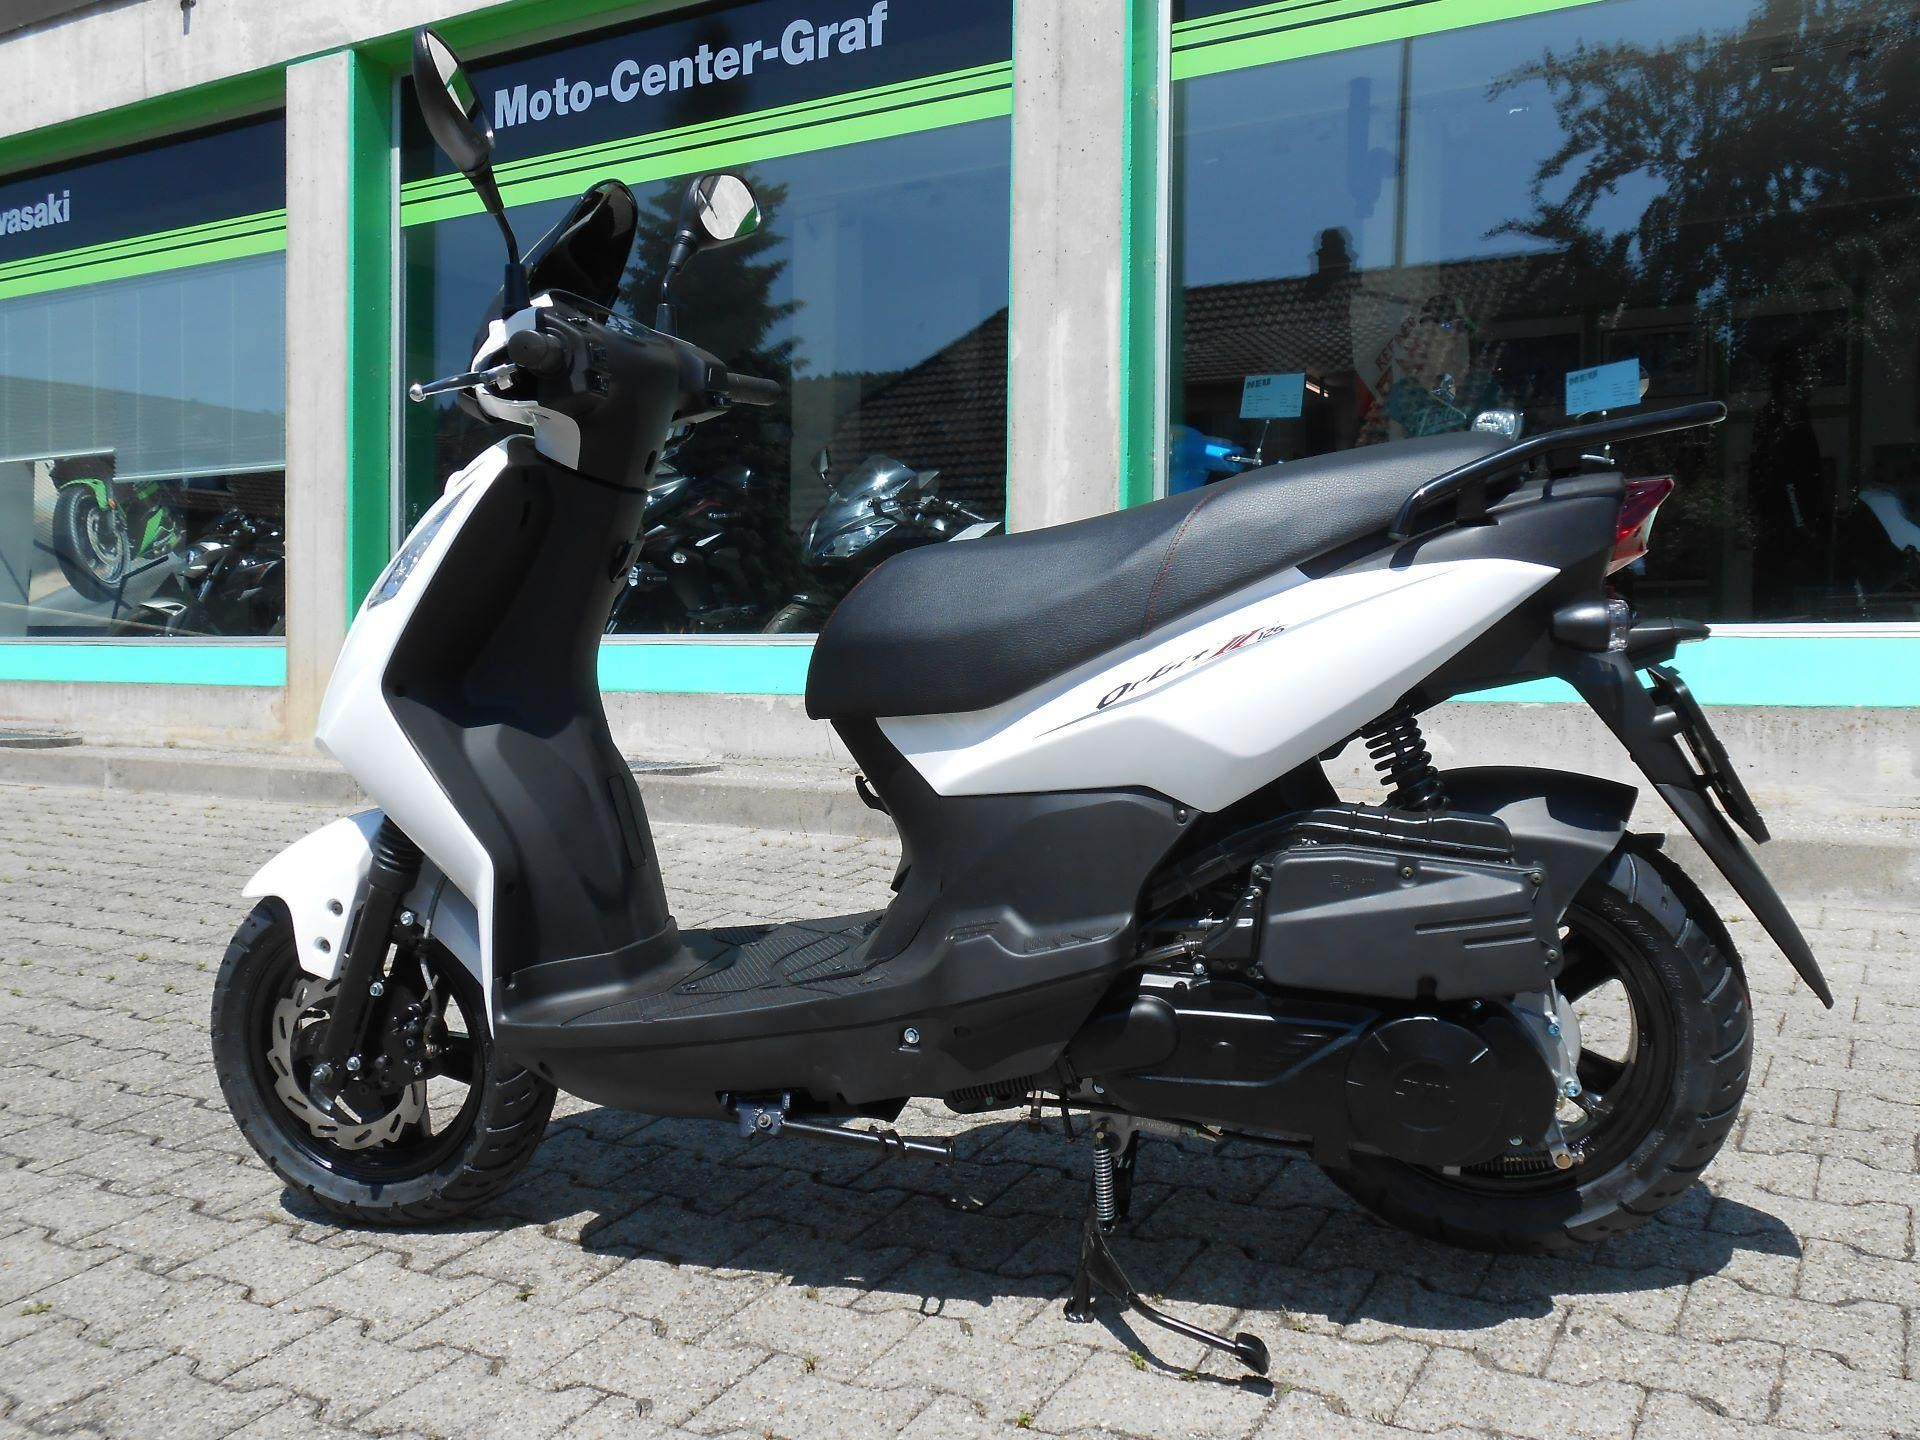 buy motorbike pre owned sym orbit ii 125 euro 4 moto center graf aegerten. Black Bedroom Furniture Sets. Home Design Ideas